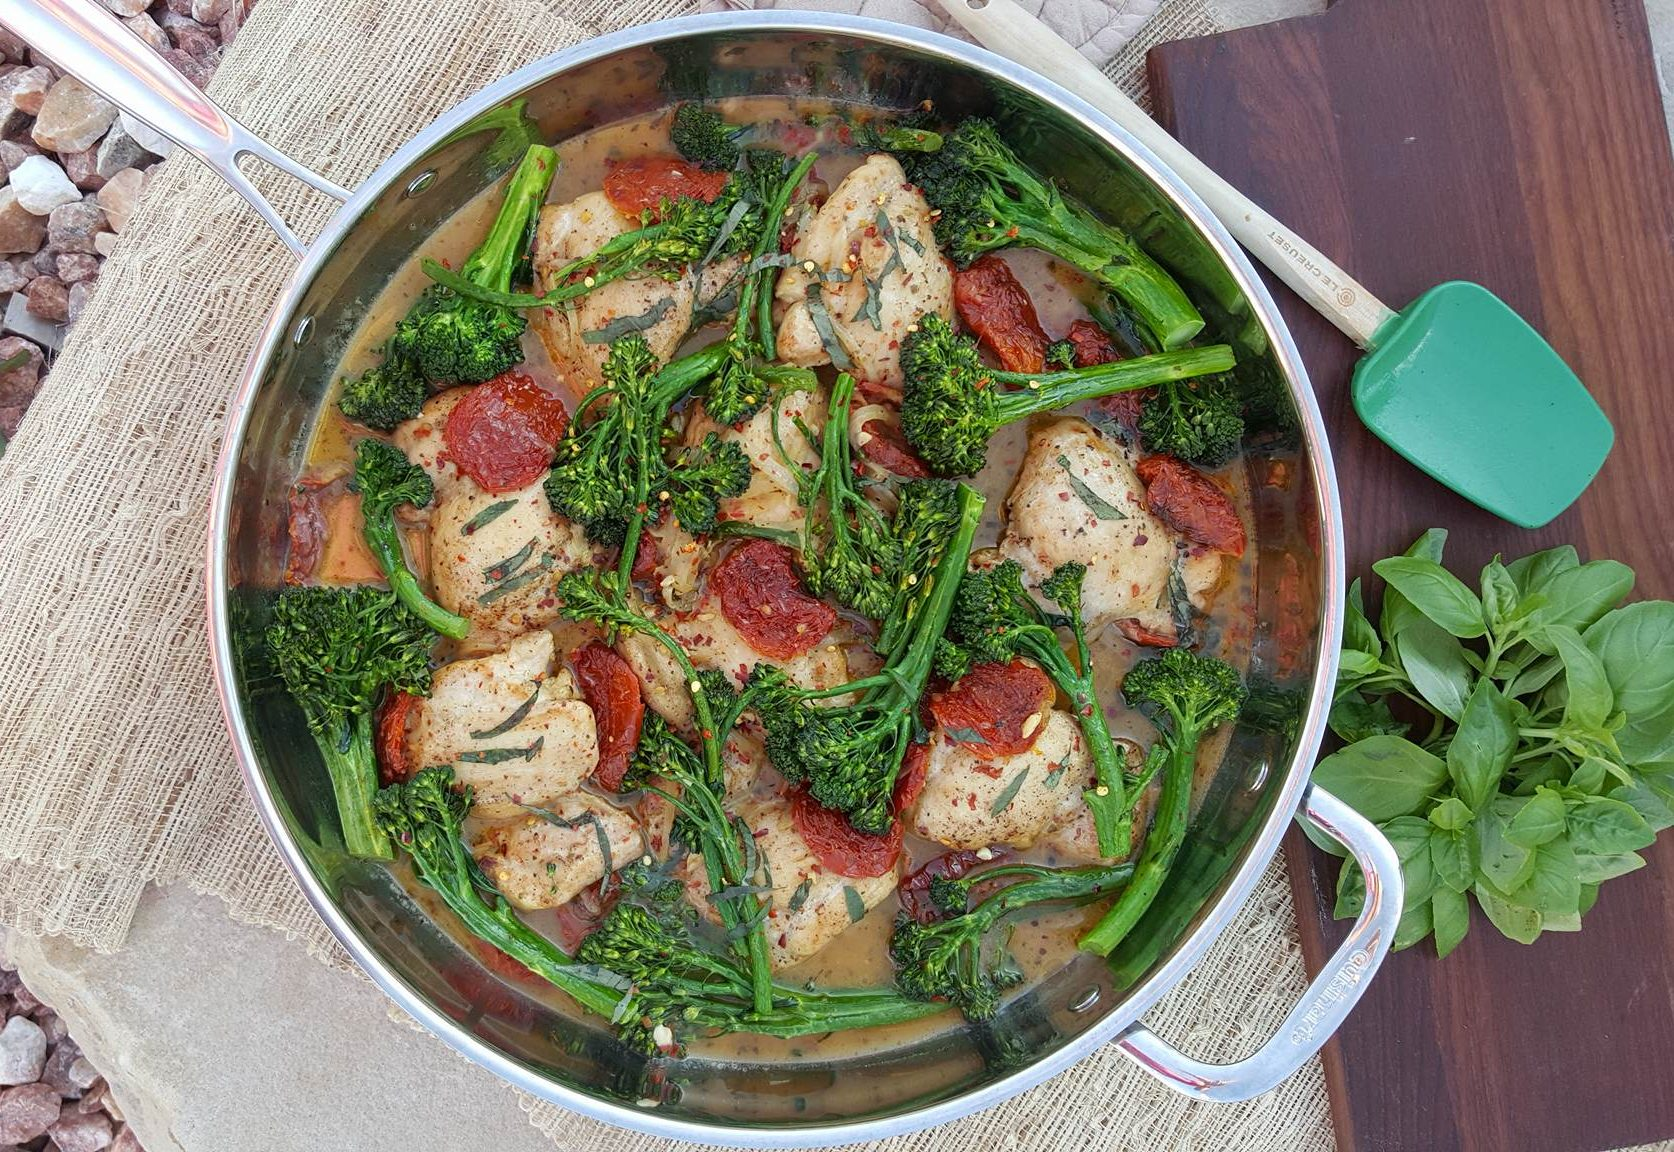 Sundried Tomato Chicken thighs with Broccolini Clean Eating Recipes http://cleanfoodcrush.com/sundried-tomato-chicken/